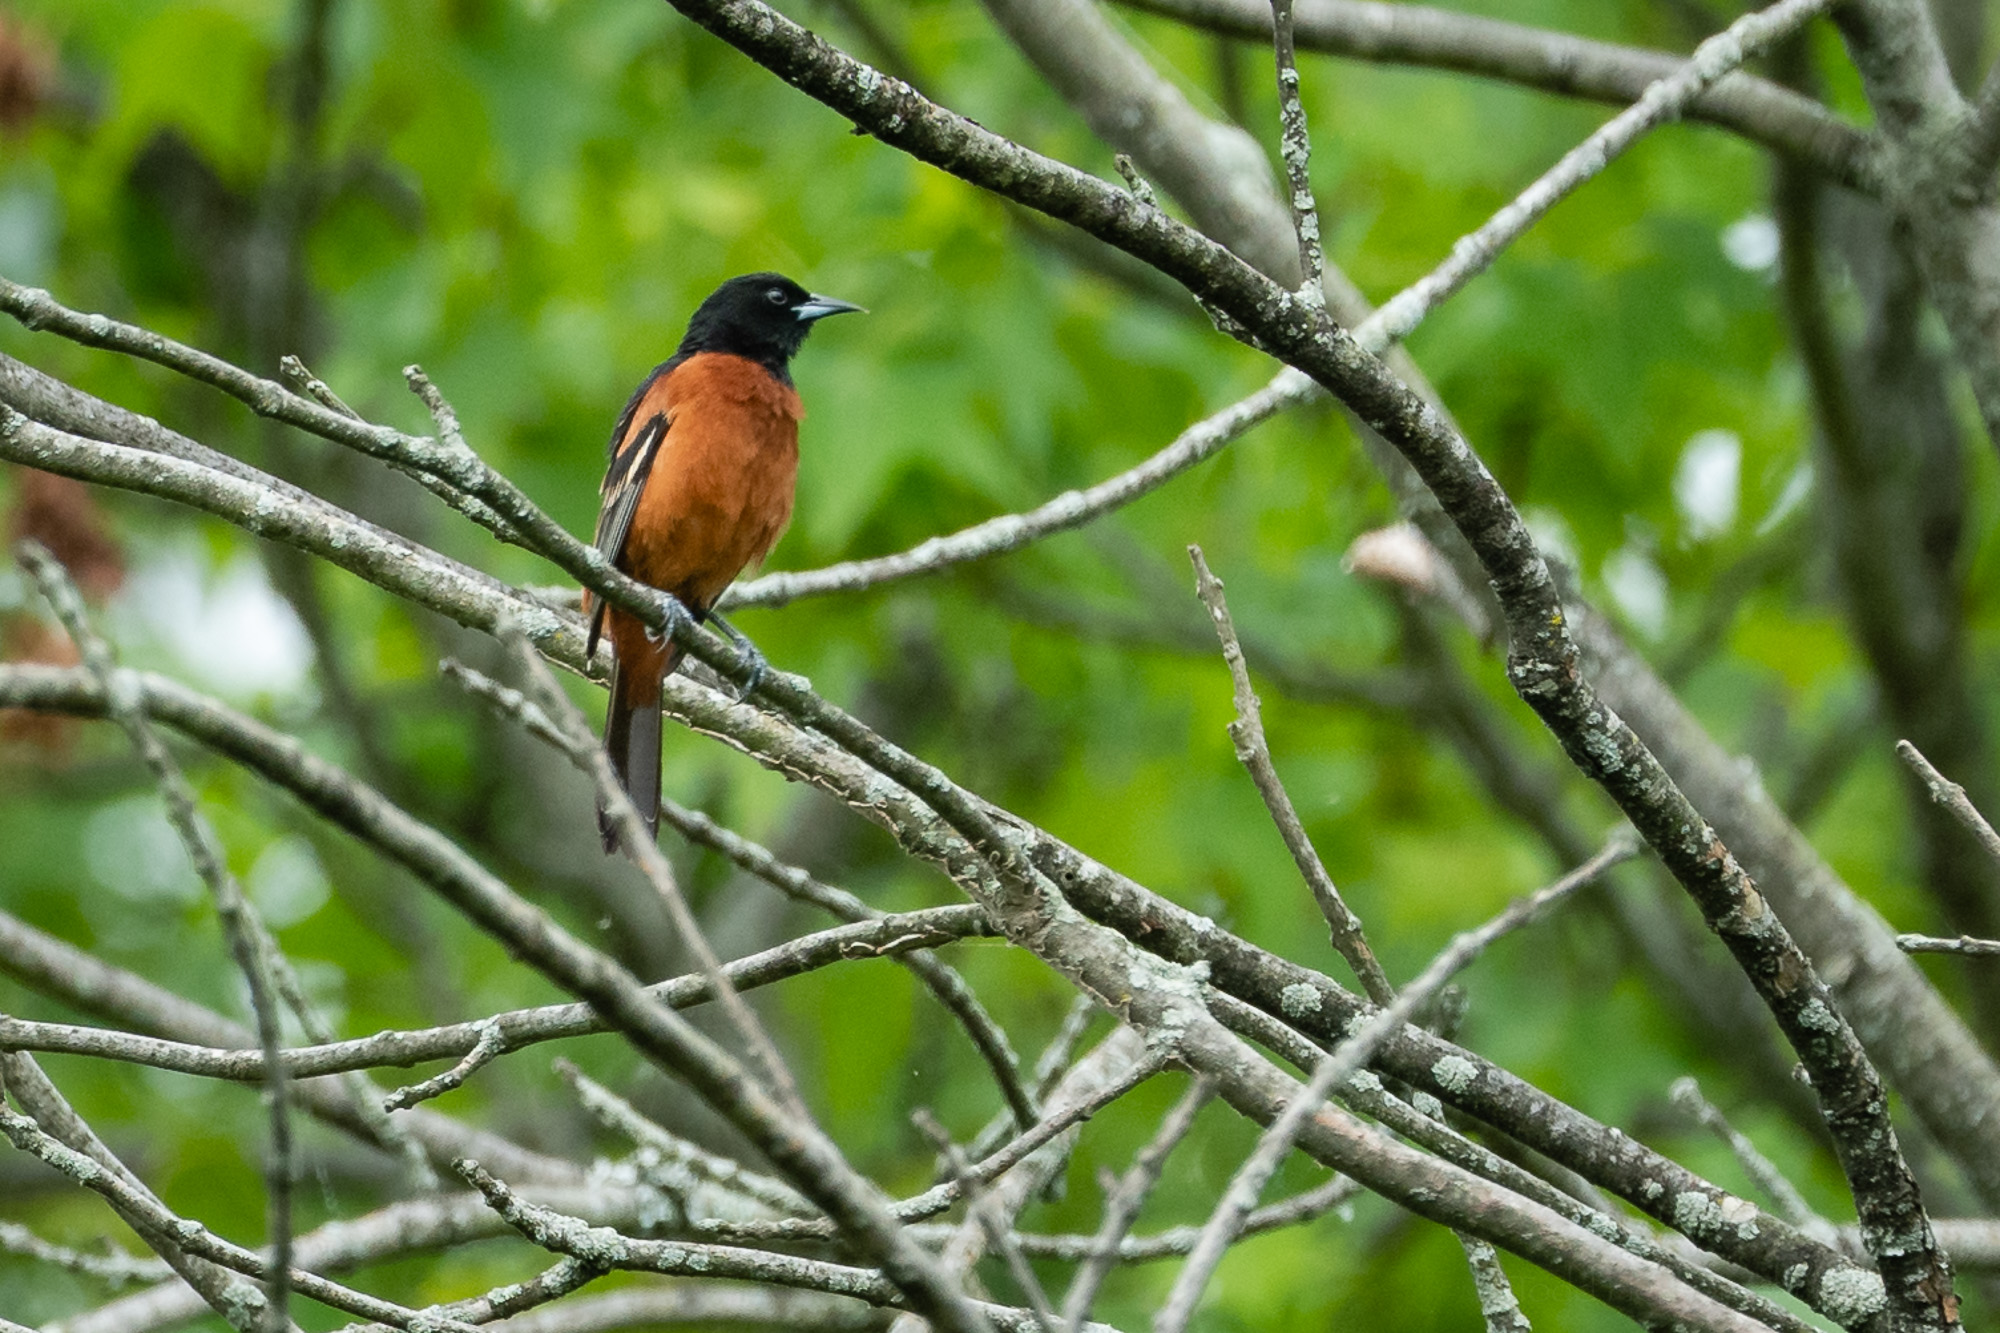 A male Orchard Oriole far off in the distance. This photo is cropped to the extreme to let you see this beautiful bird.